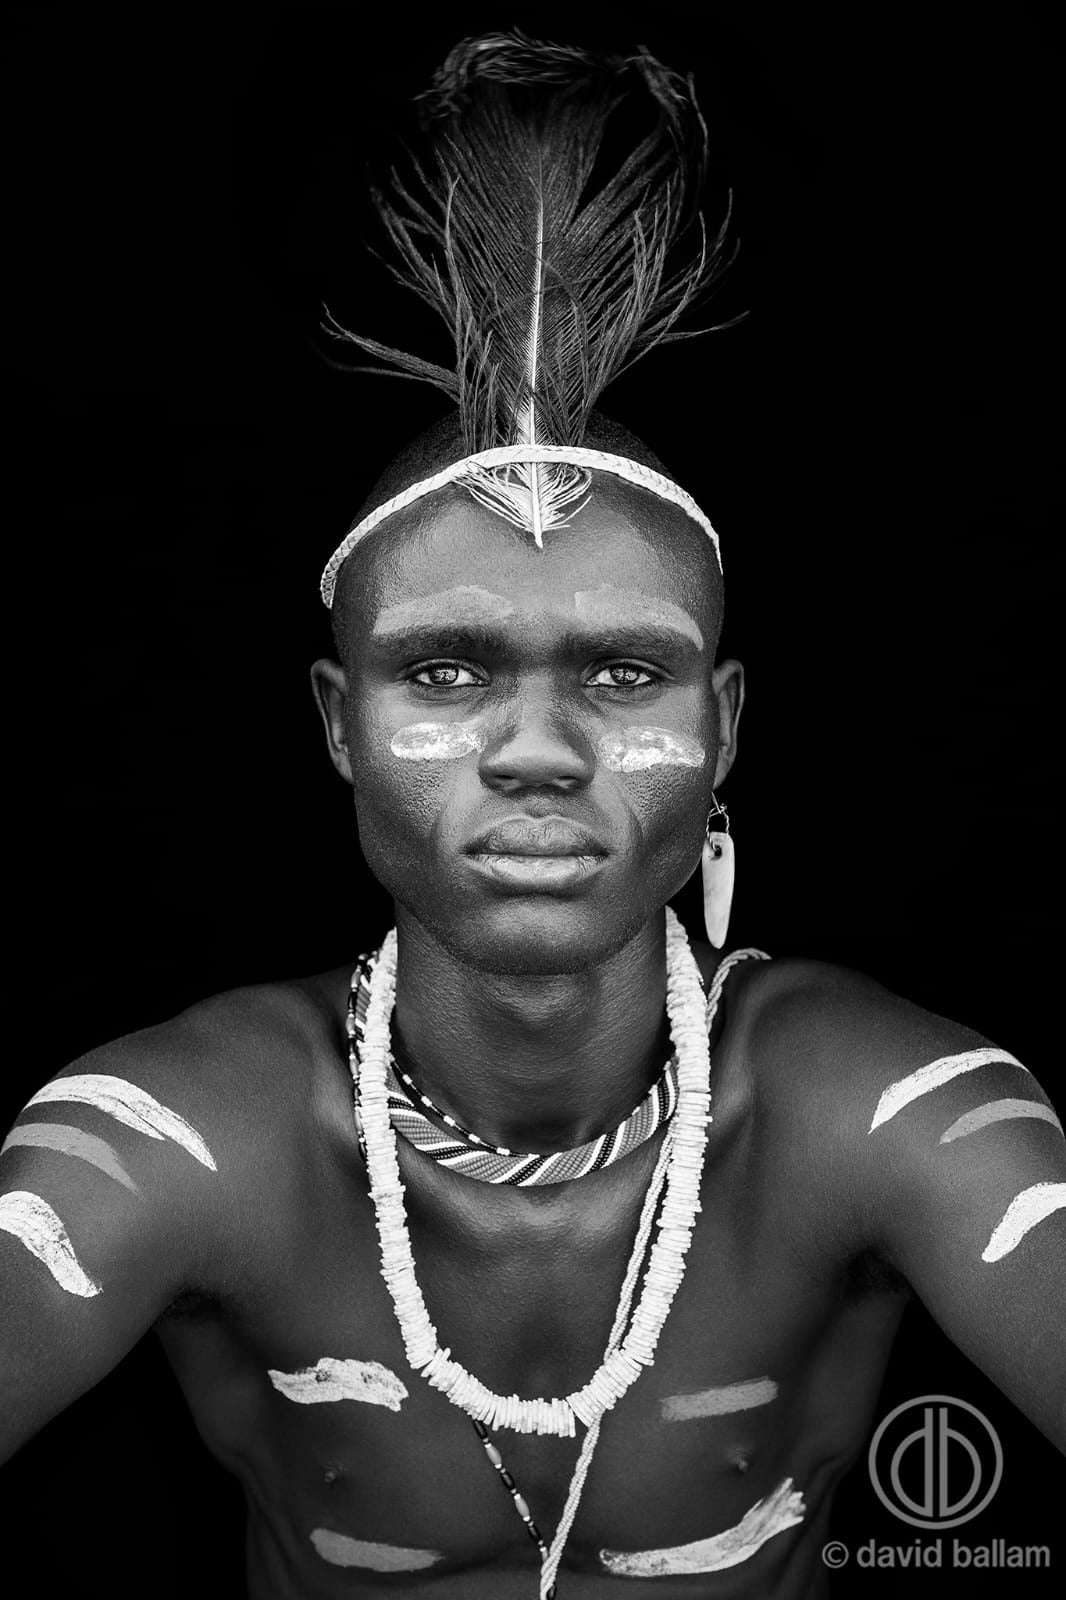 David Ballam - KANA 52 - El Molo Man, Lake Turkana, Kenya.